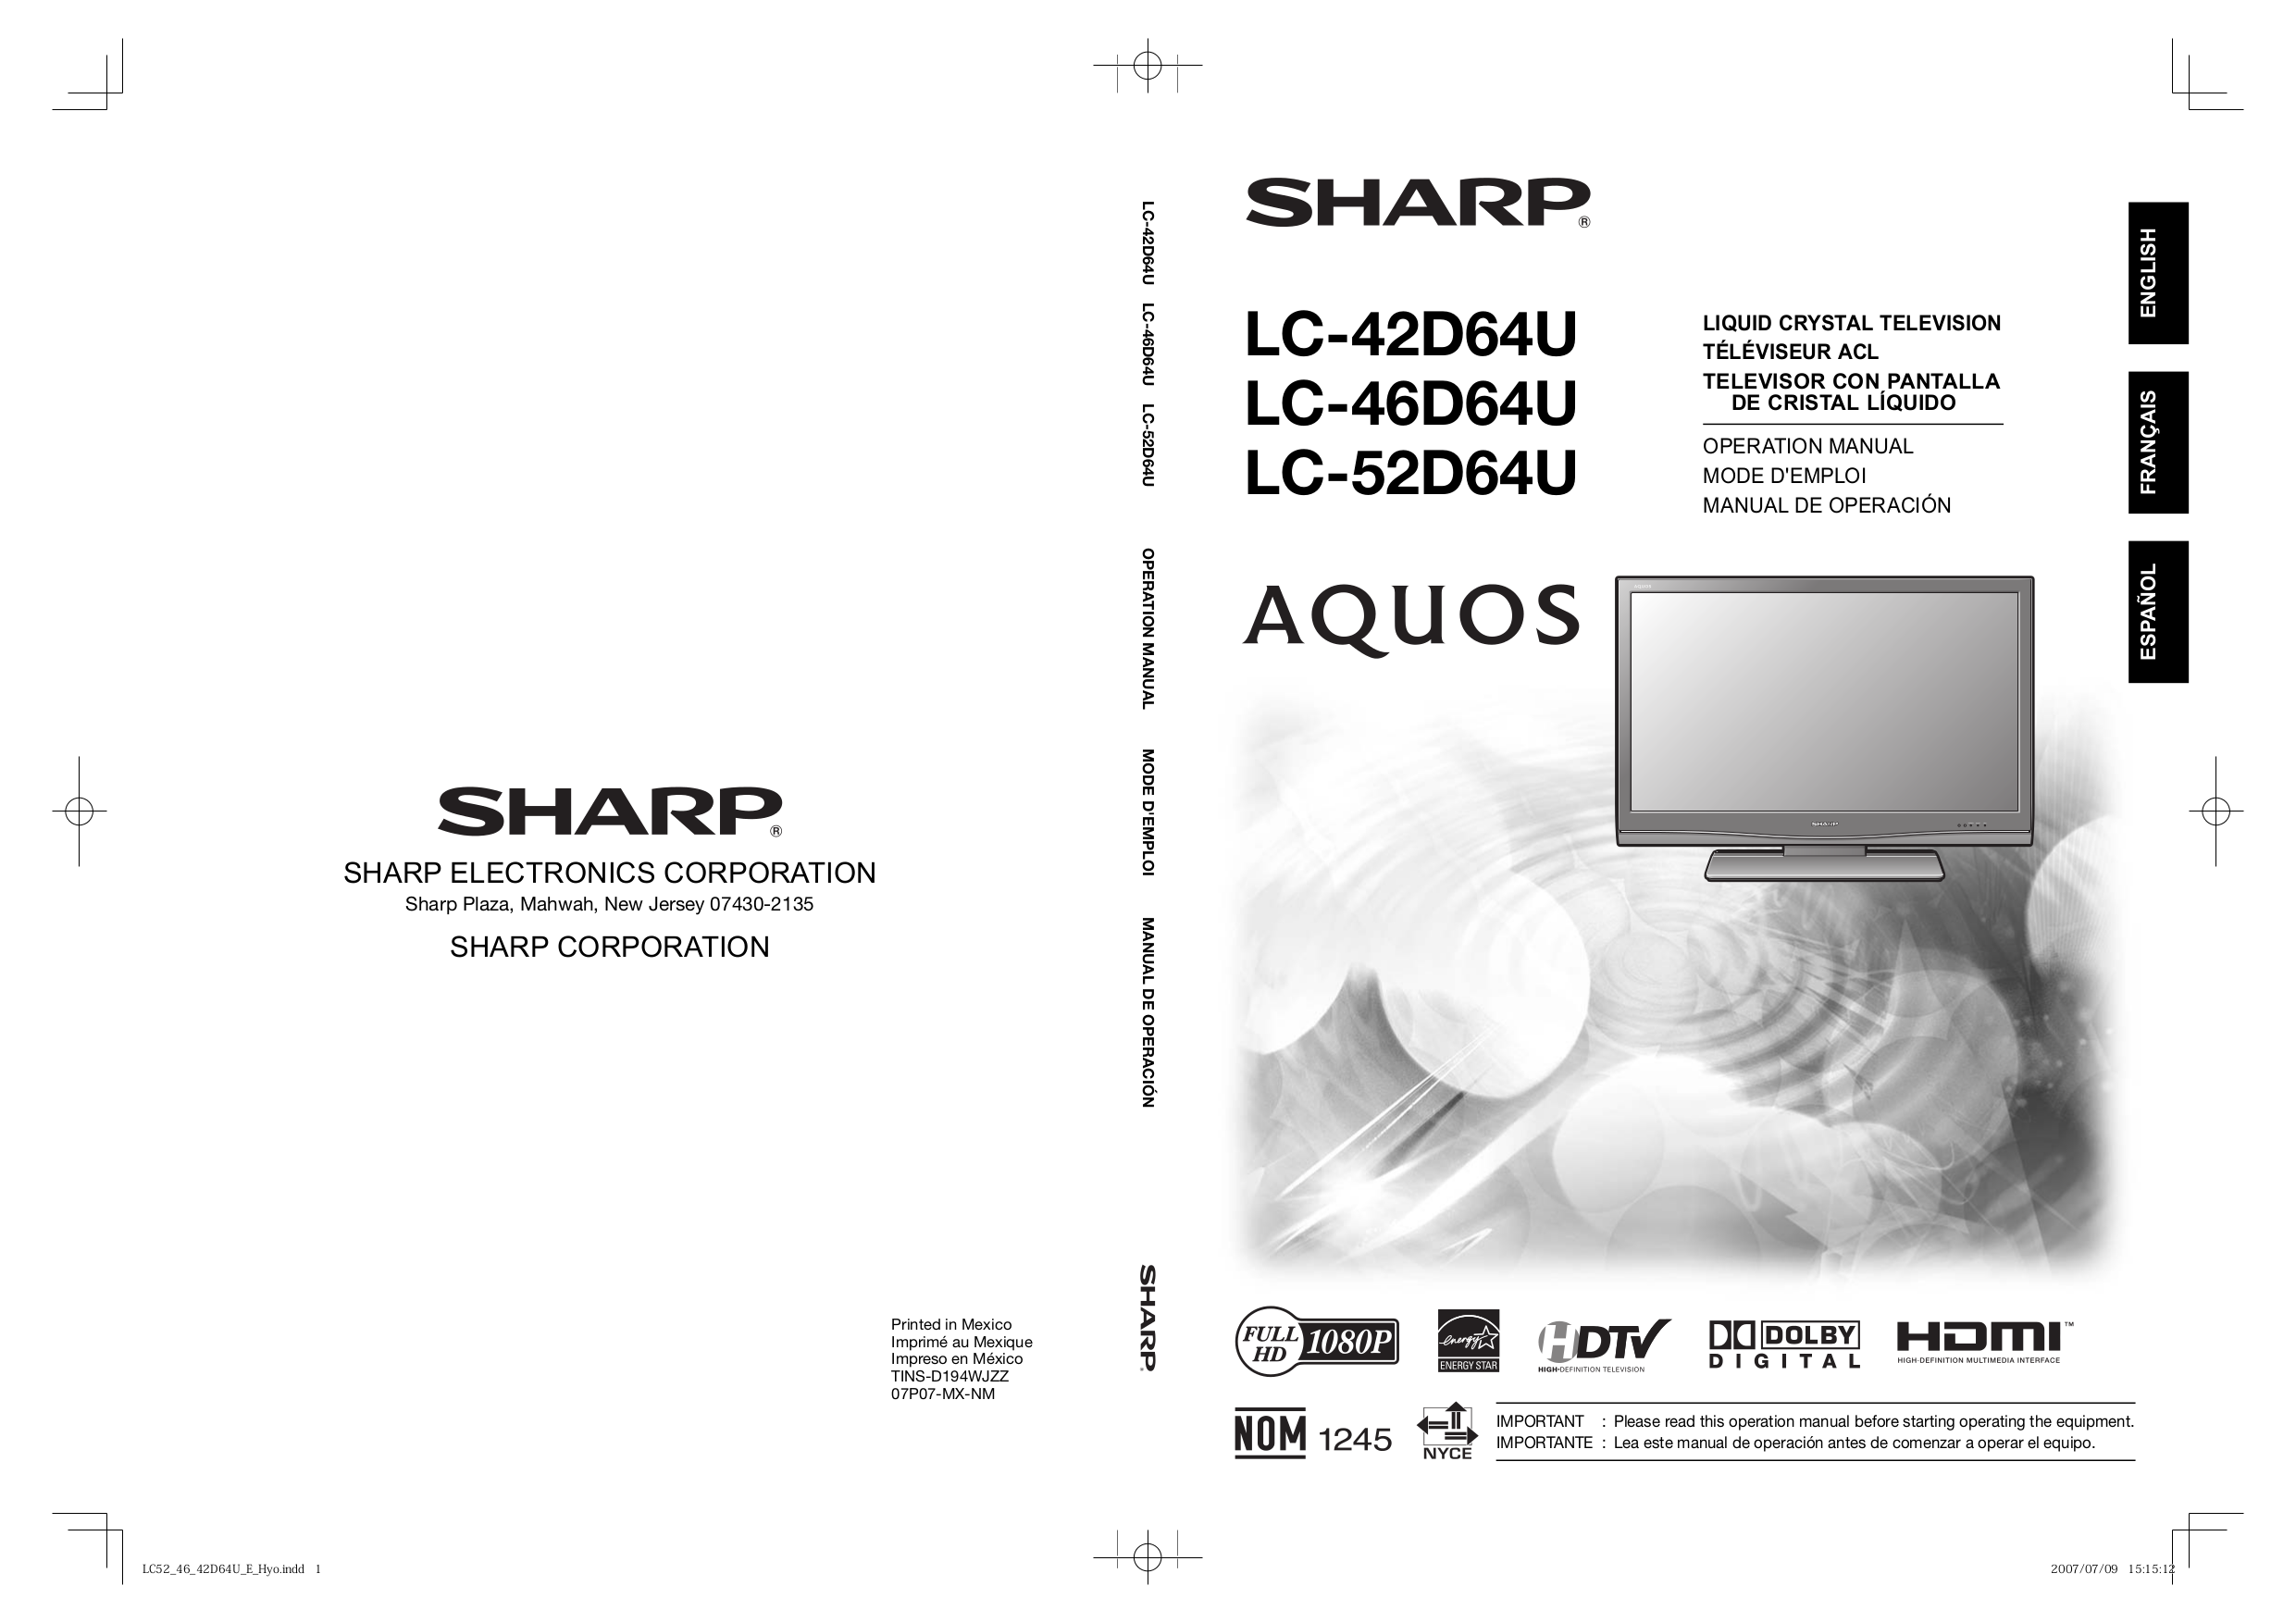 download free pdf for sharp aquos lc 46d64u tv manual rh umlib com sharp tv lc-46d64u manual sharp tv lc-46d64u manual